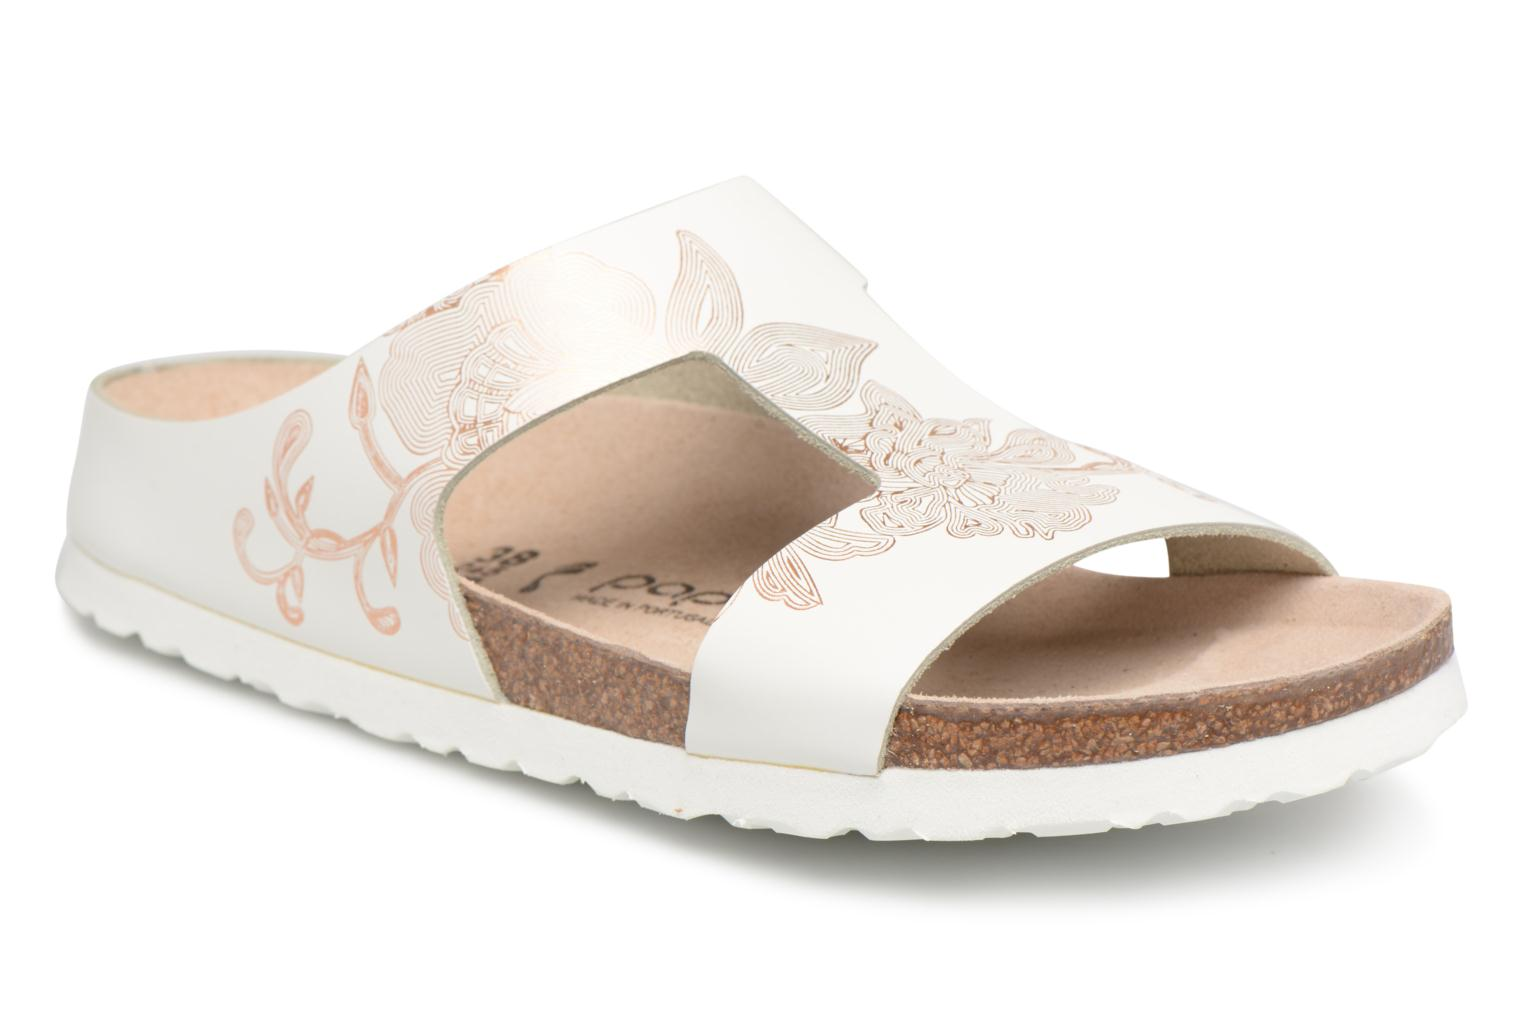 Marques Chaussure femme Papillio femme Charlize Cuir W Ornament White / Rosegold